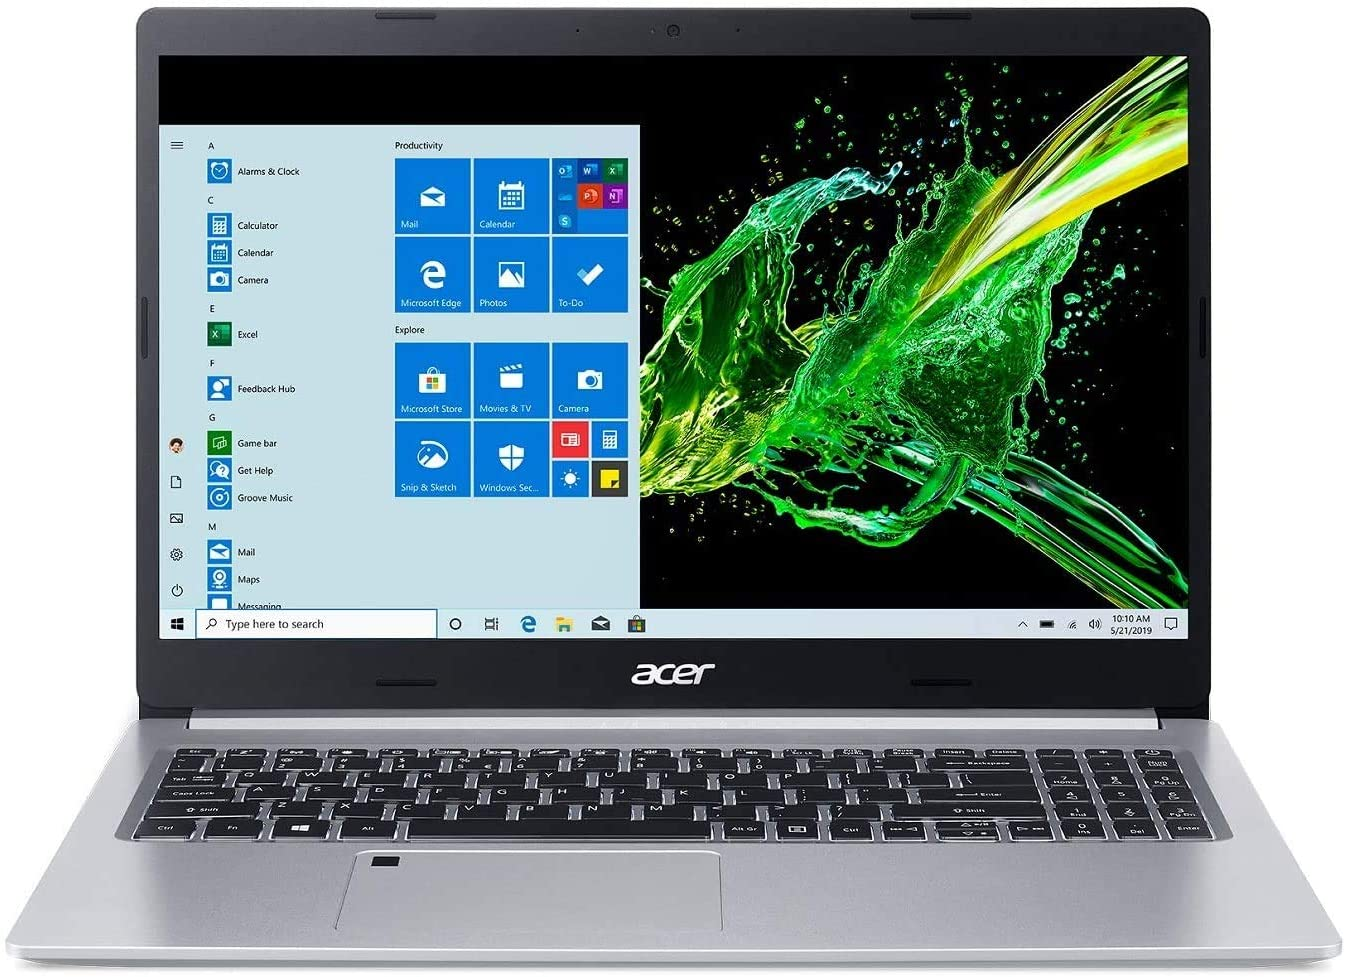 "Acer Aspire 5 15.6"" FHD IPS Laptop Computer 10th Gen Intel Core i5-1035G1 Processor (Up to 3.6GHz) 16GB RAM 256GB SSD WiFi 6, HD Webcam, Fingerprint Reader, Backlit Keyboard, Windows 10 Pro"